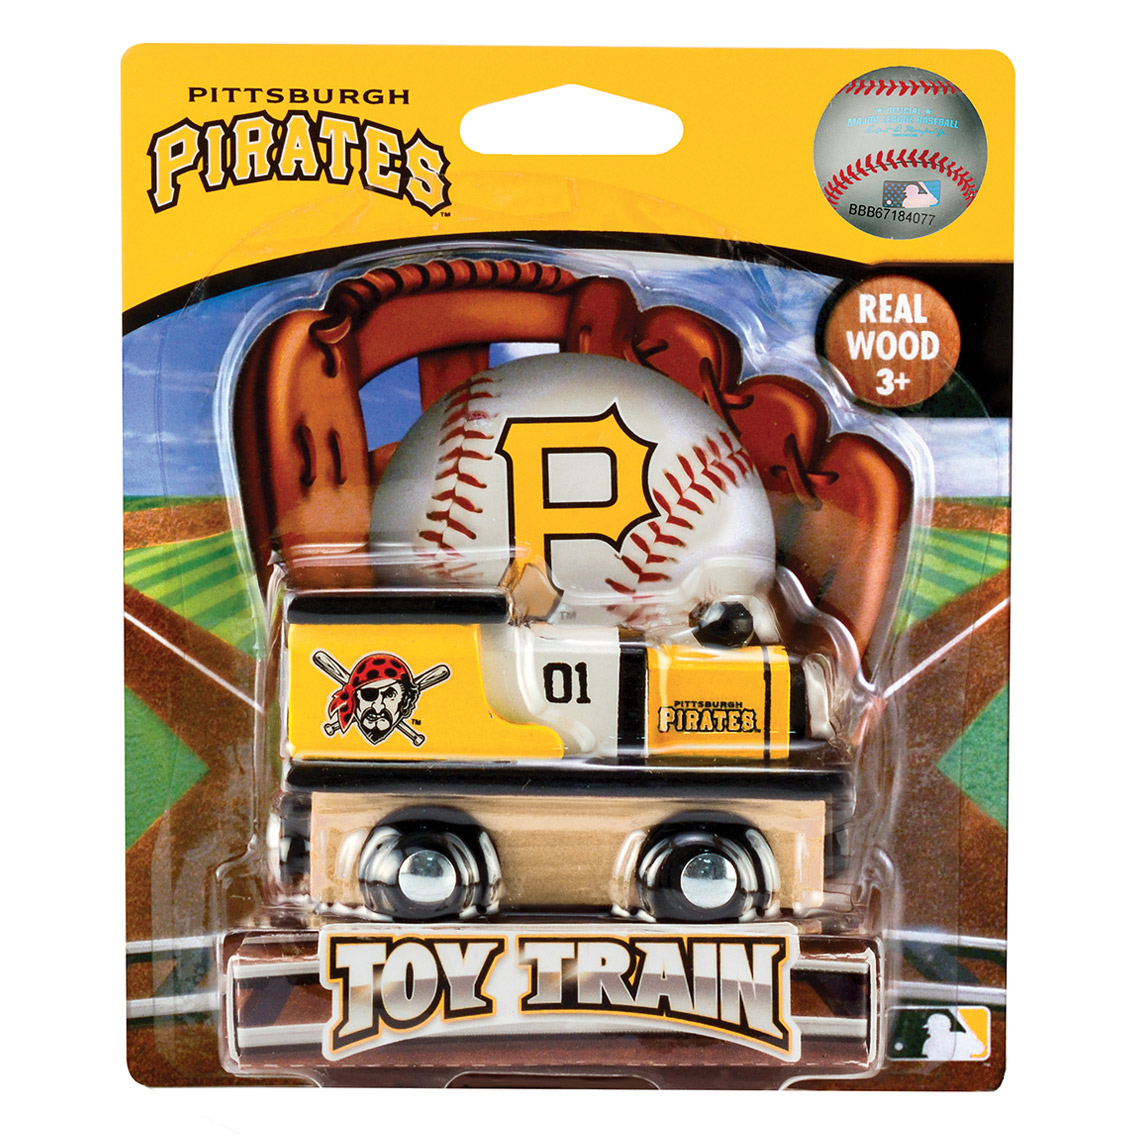 Pittsburgh Pirates Youth Toy Train - No Size